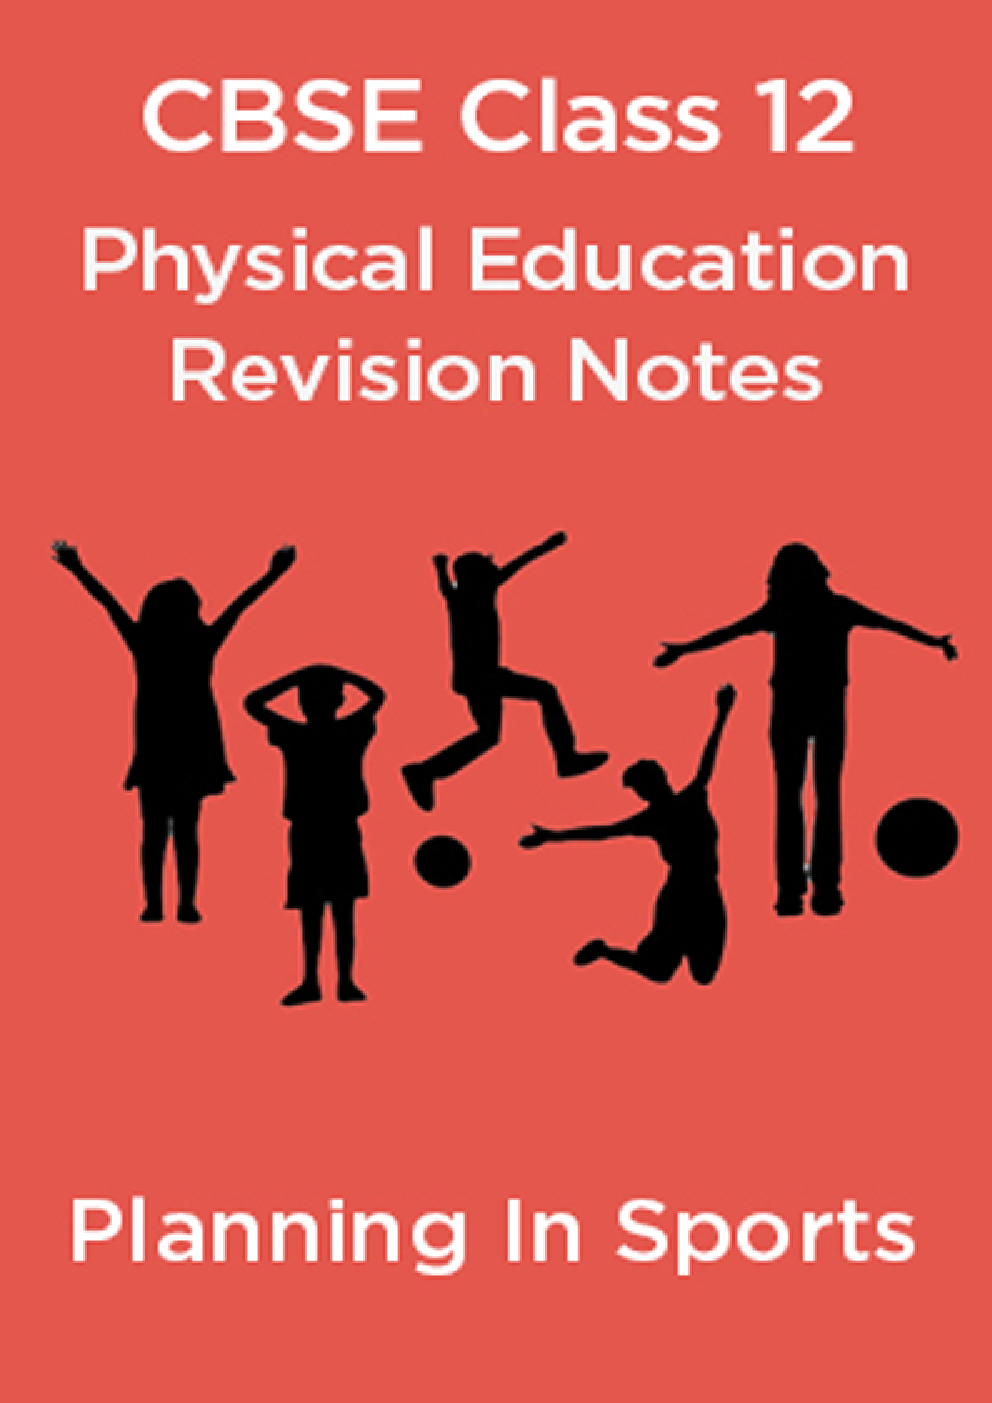 CBSE Class 12 Physical Education Revision Notes  Planning In Sports - Page 1